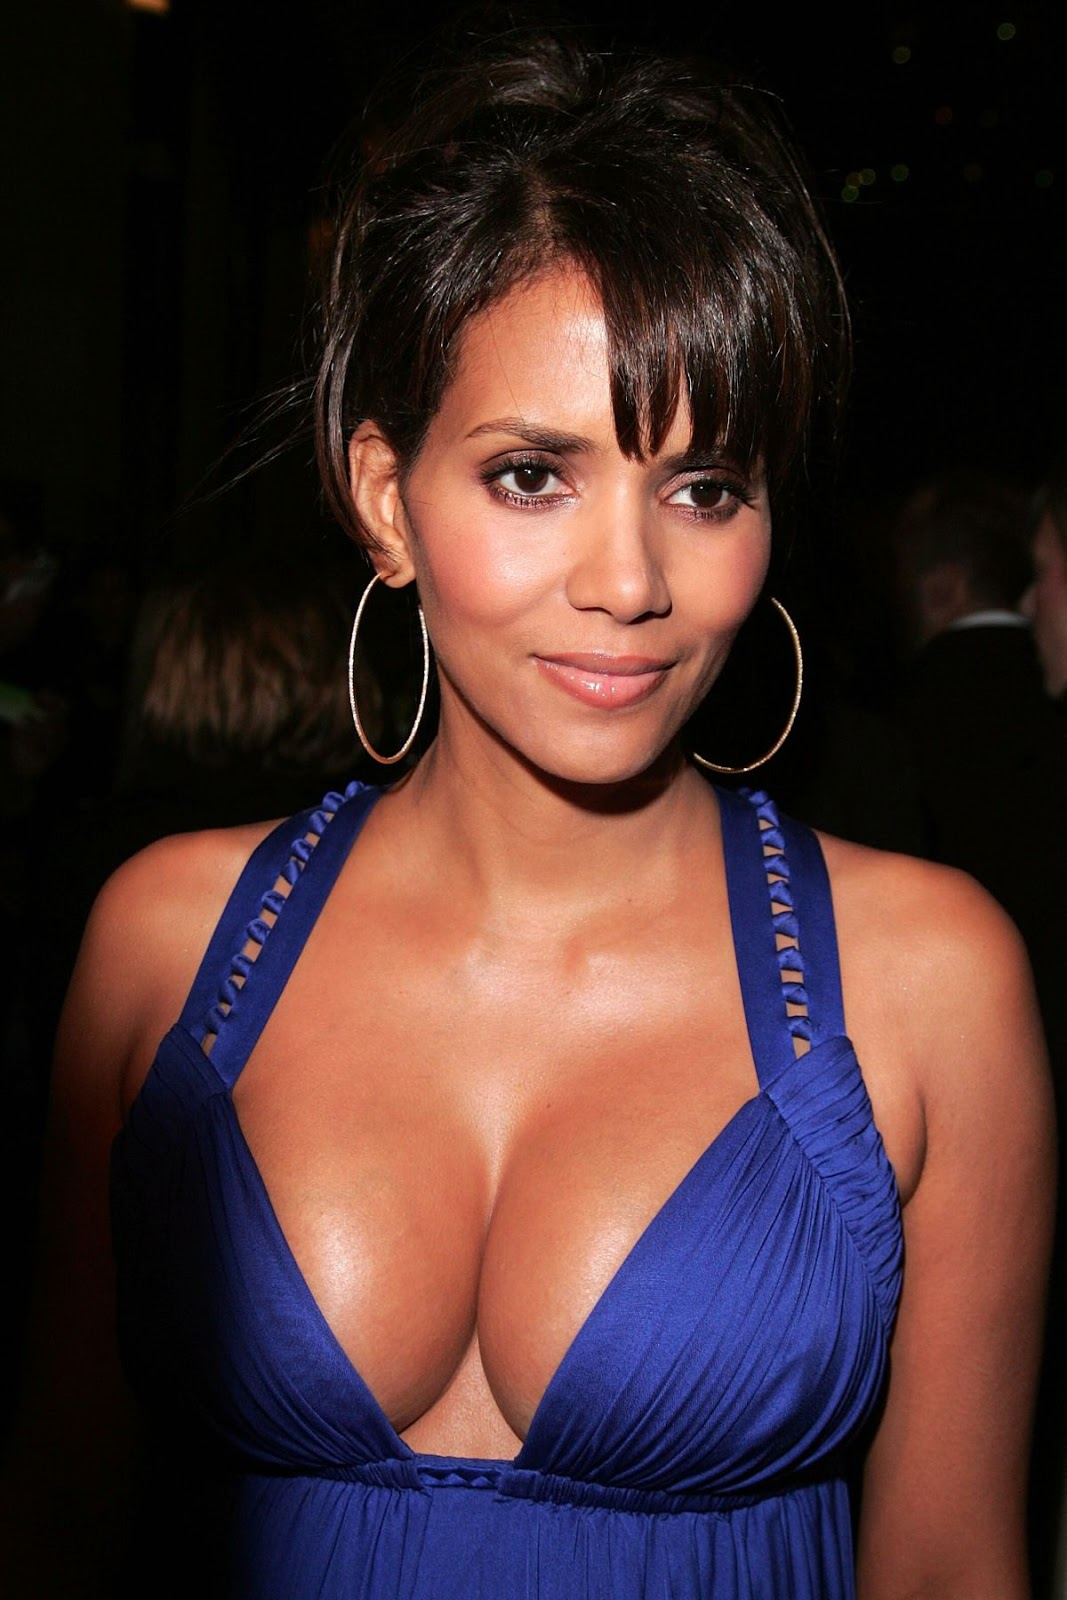 Halle Berry Workout and Diet Secret | Muscle world холли берри